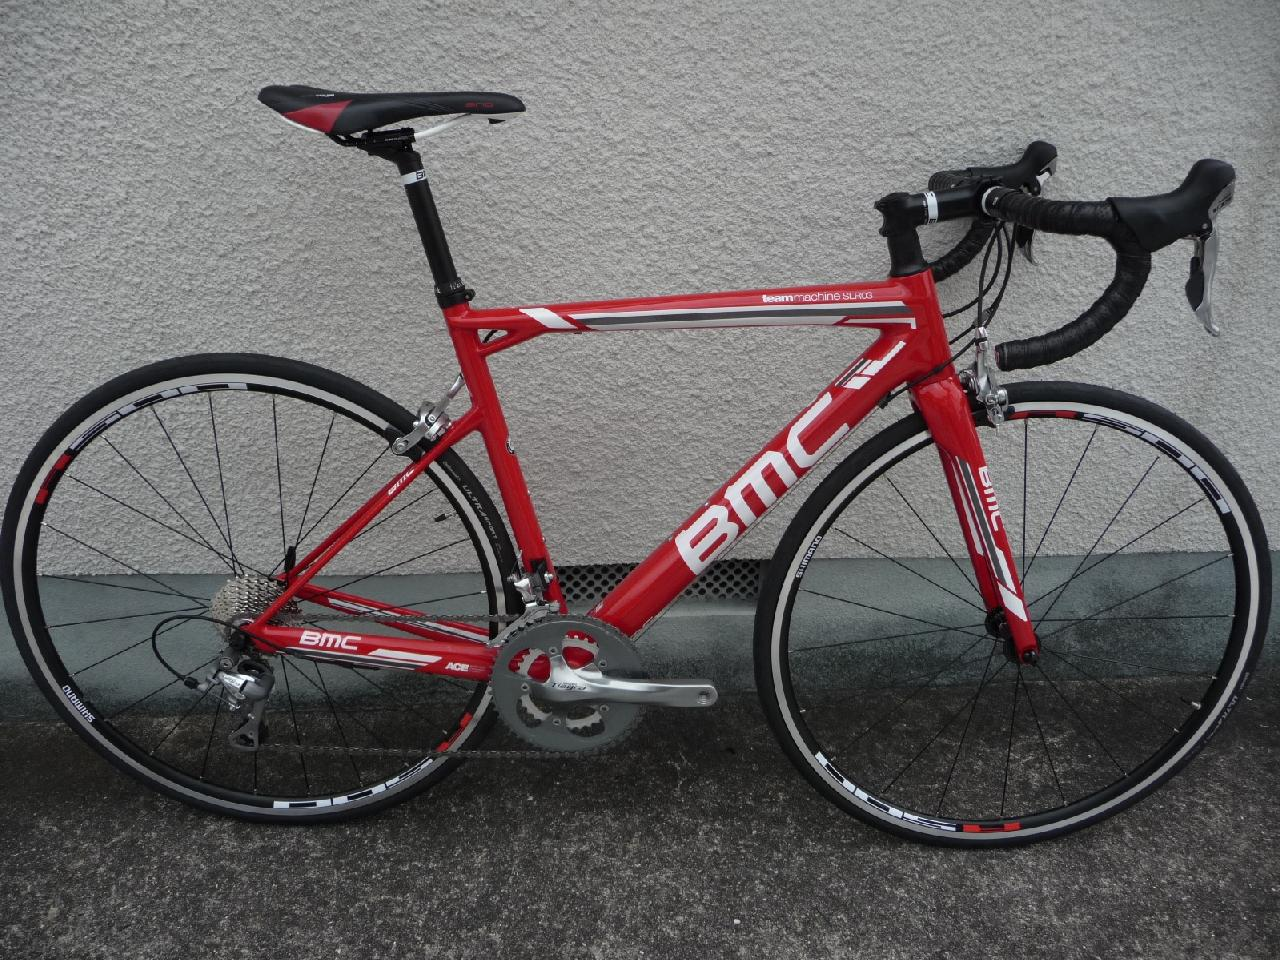 Team Machine BMC Slr03